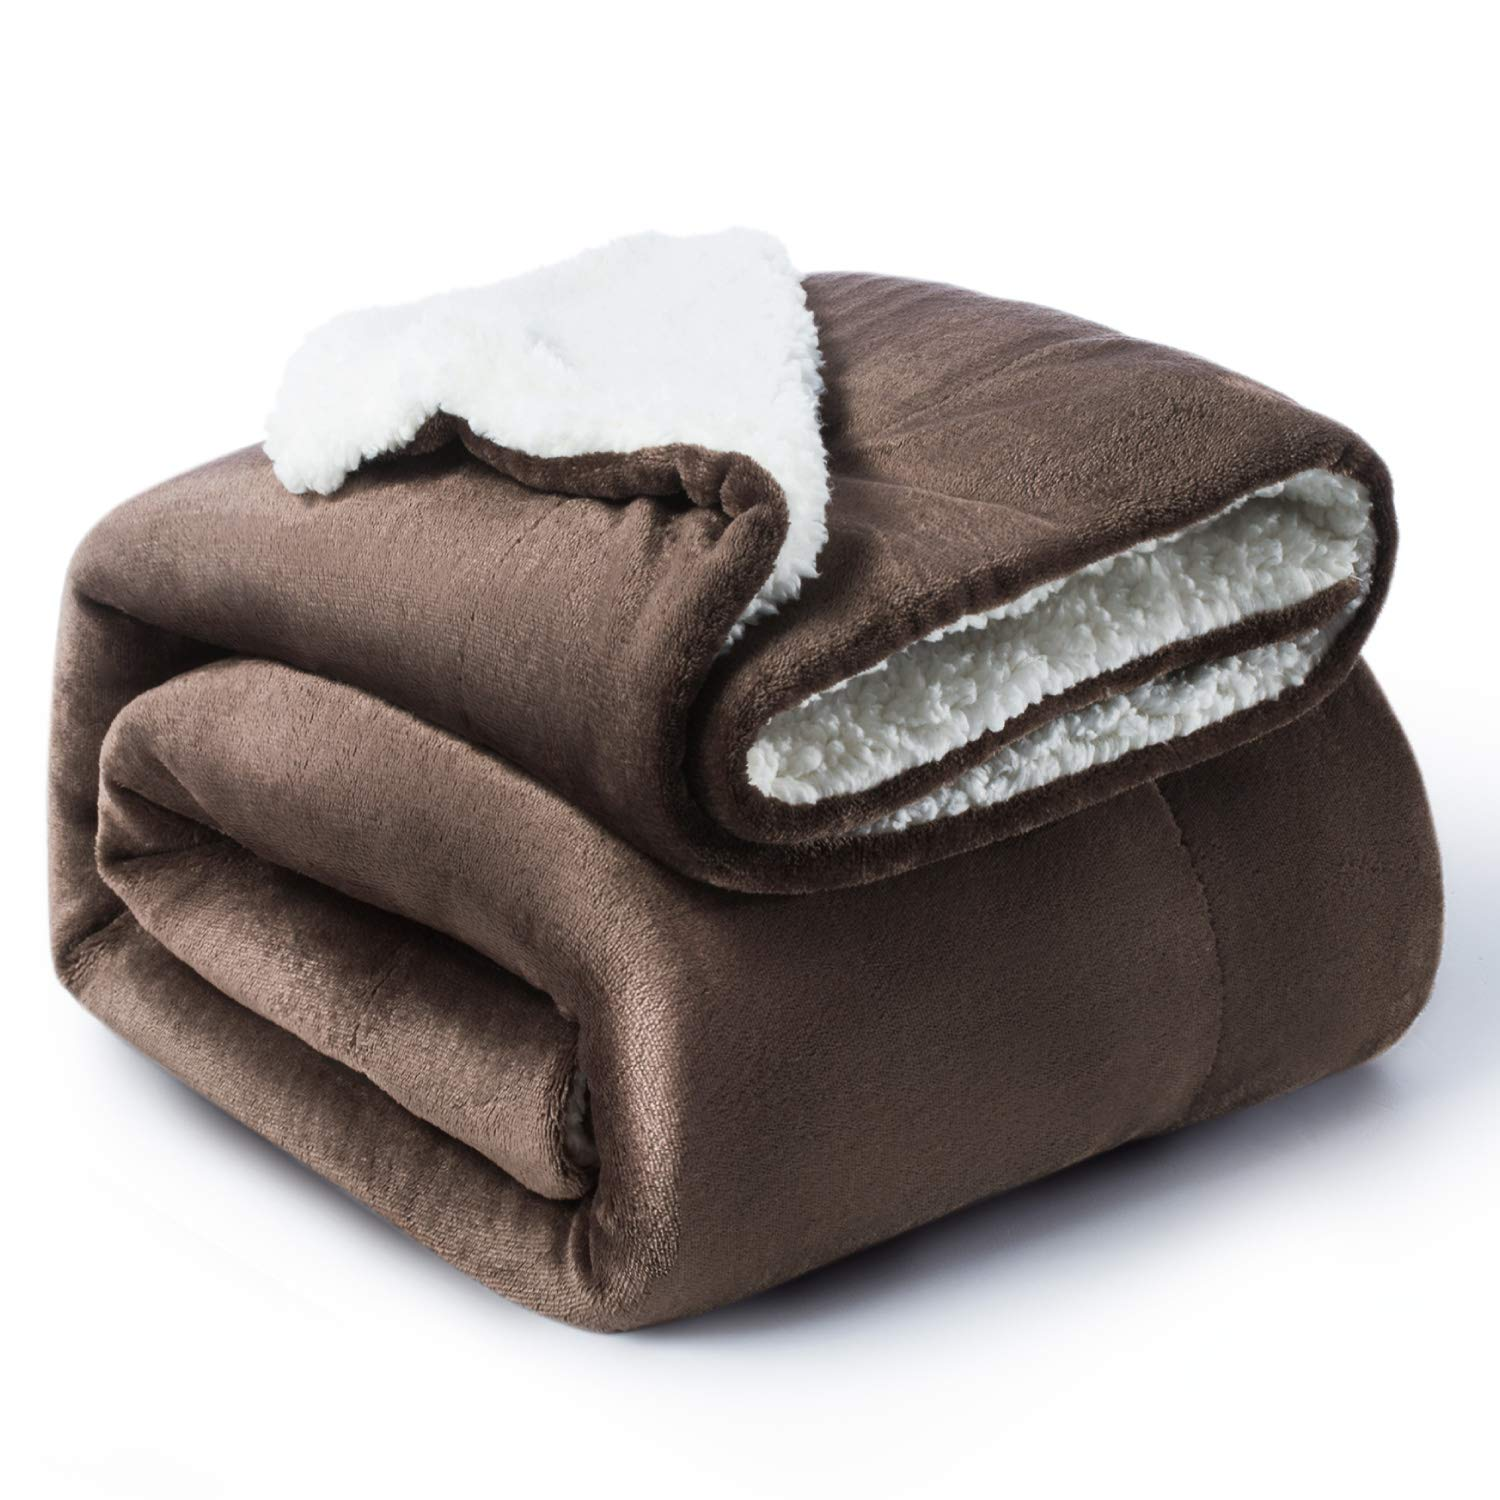 Buy Bedsure Sherpa Blanket Throw Blankets Bed Blankets Soft Cozy And Warm Reversible Textured Fuzzy 60 X 80 Brown Online At Low Prices In India Amazon In